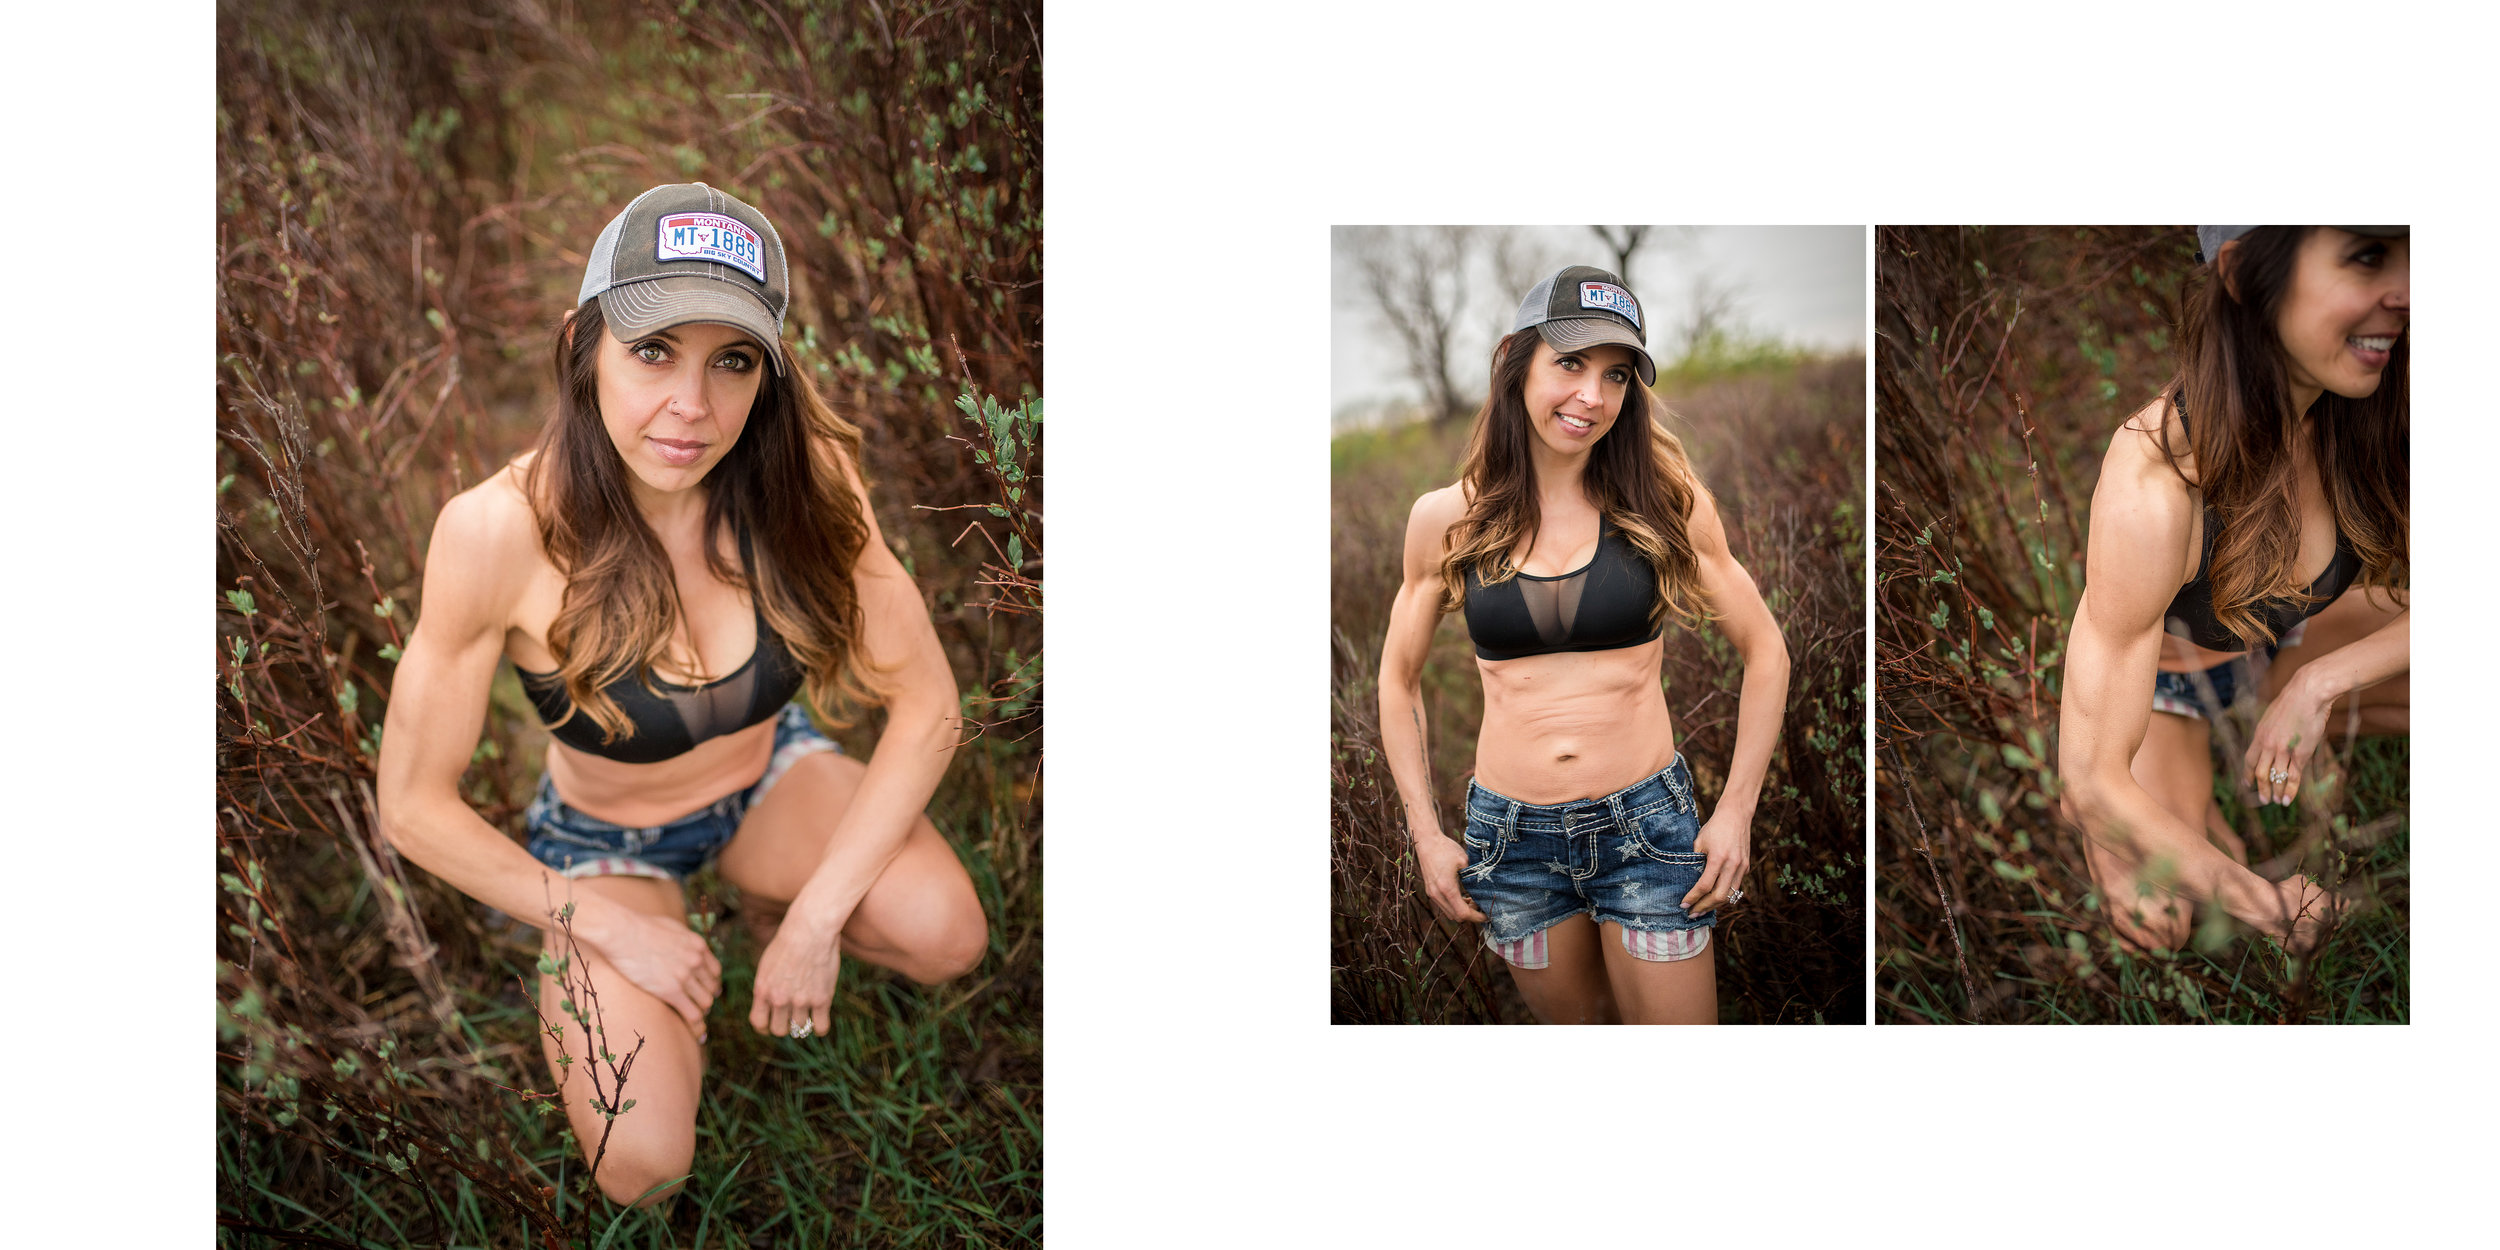 fitness photographer in great falls, mt